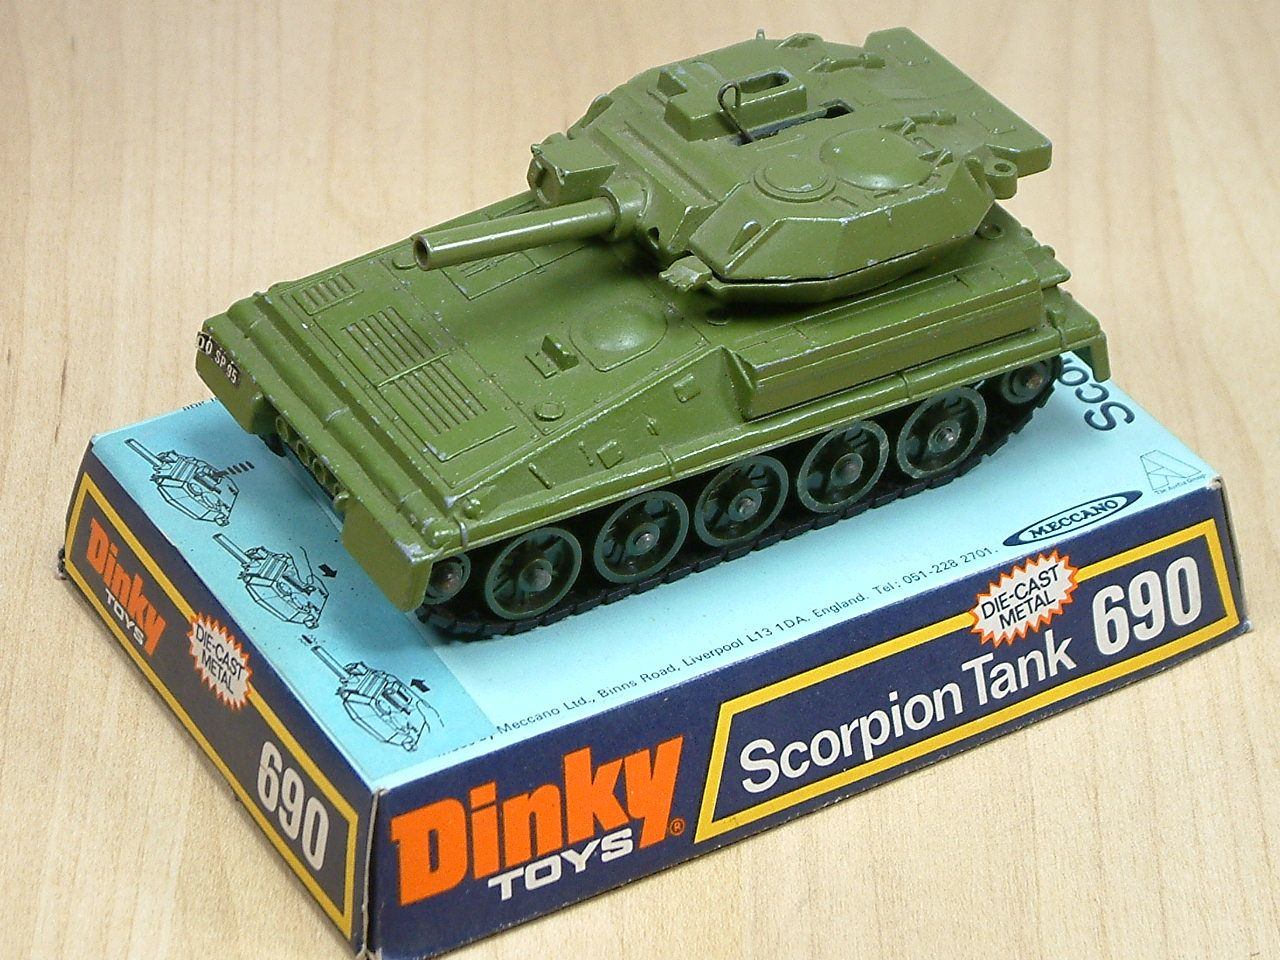 Dinky Toy Scorpion Tank  Featured rotating turret and gun firing